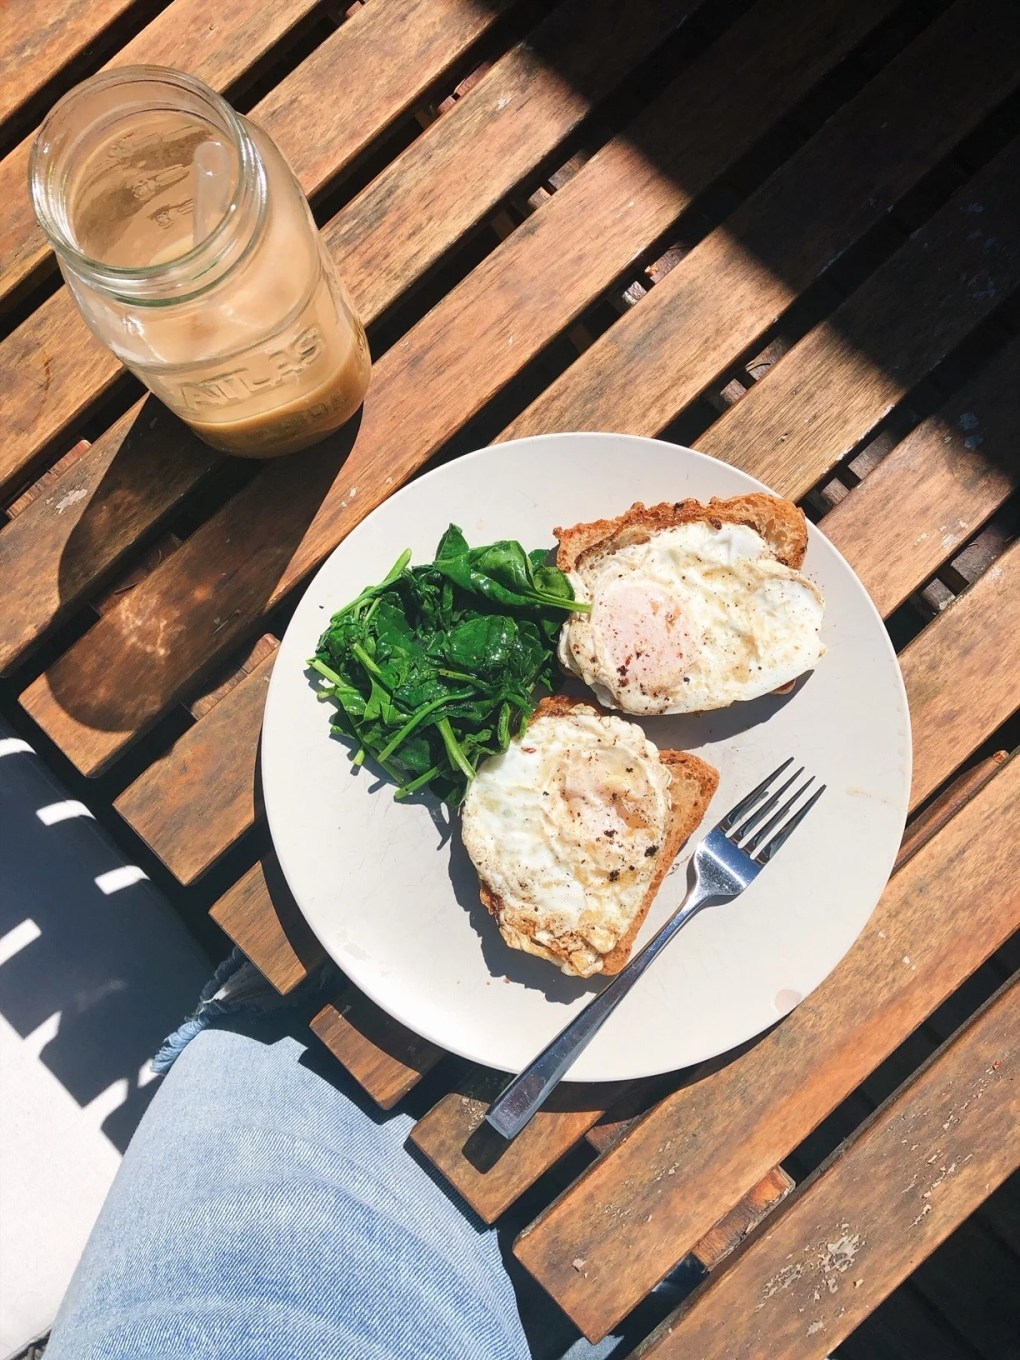 A plate on an outdoor wooden table with two open faced fried egg sandwiches and a side of sauteed spinach